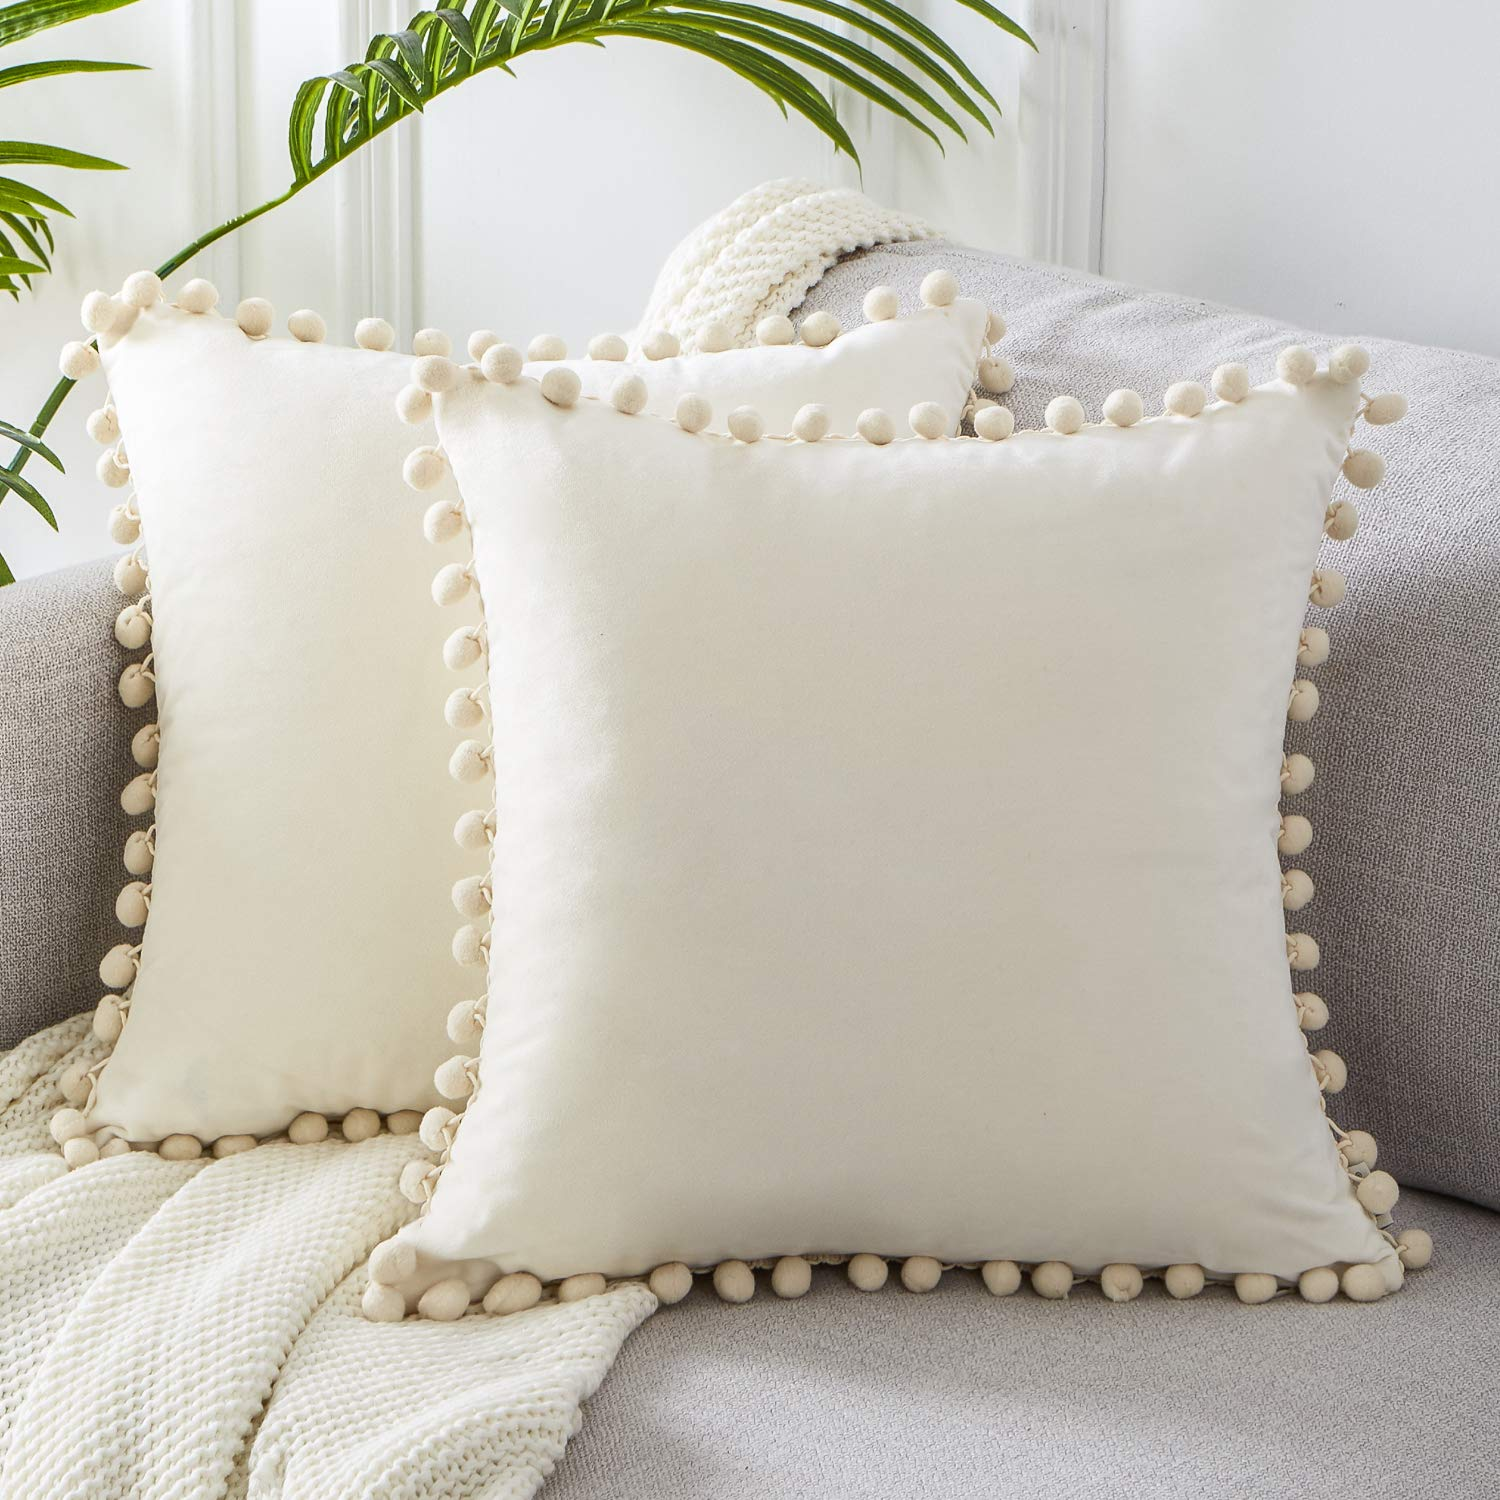 26x26-inch New Square Pillows Set of 2 Cotton Hypoallergenic Ball Hollowfibre